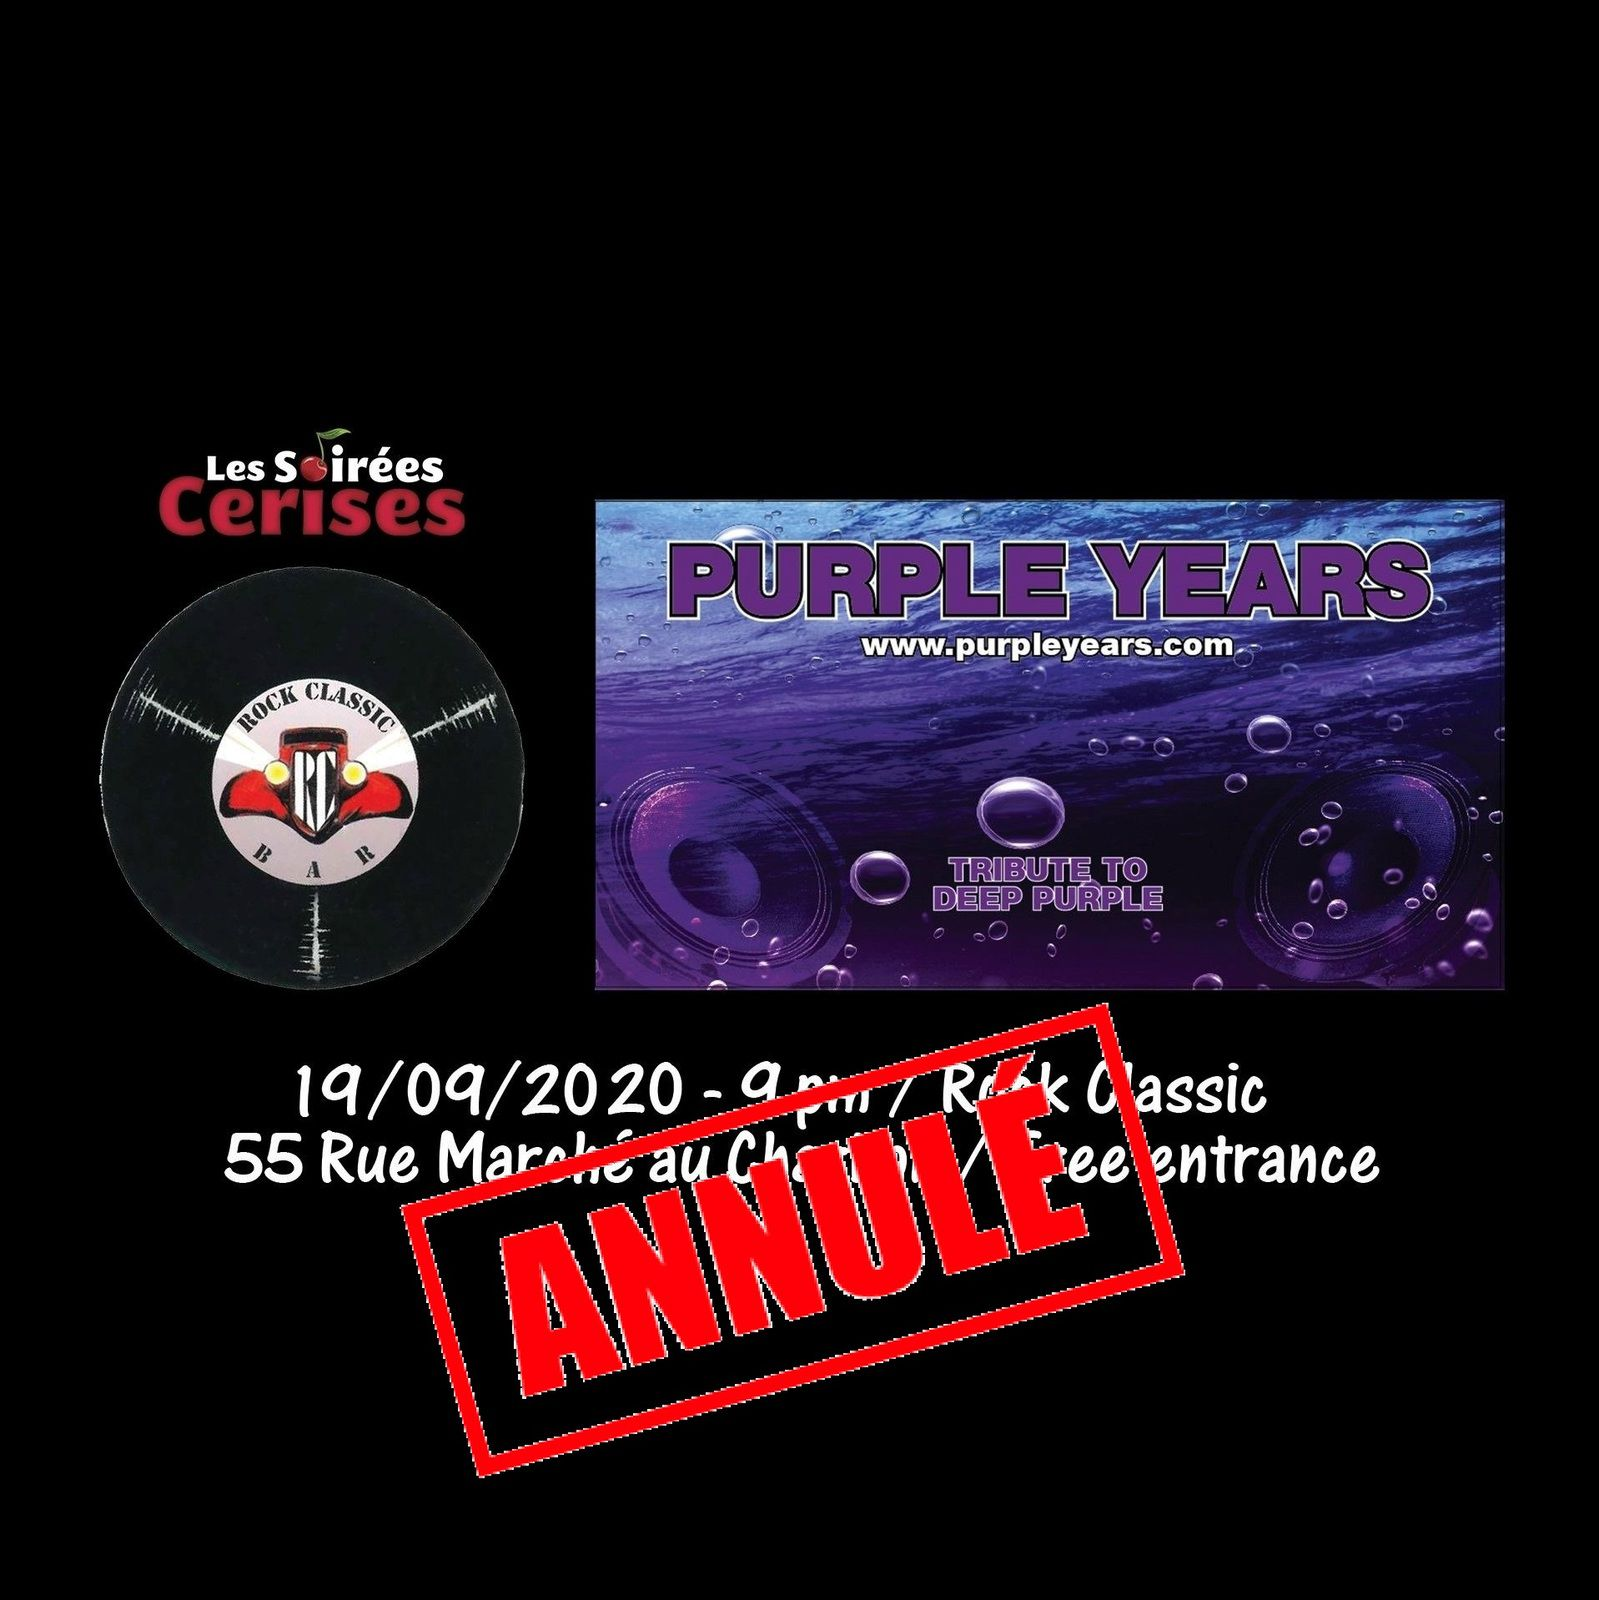 🎵 Purple Years @ Rock Classic - 19/09/2020 - annulé